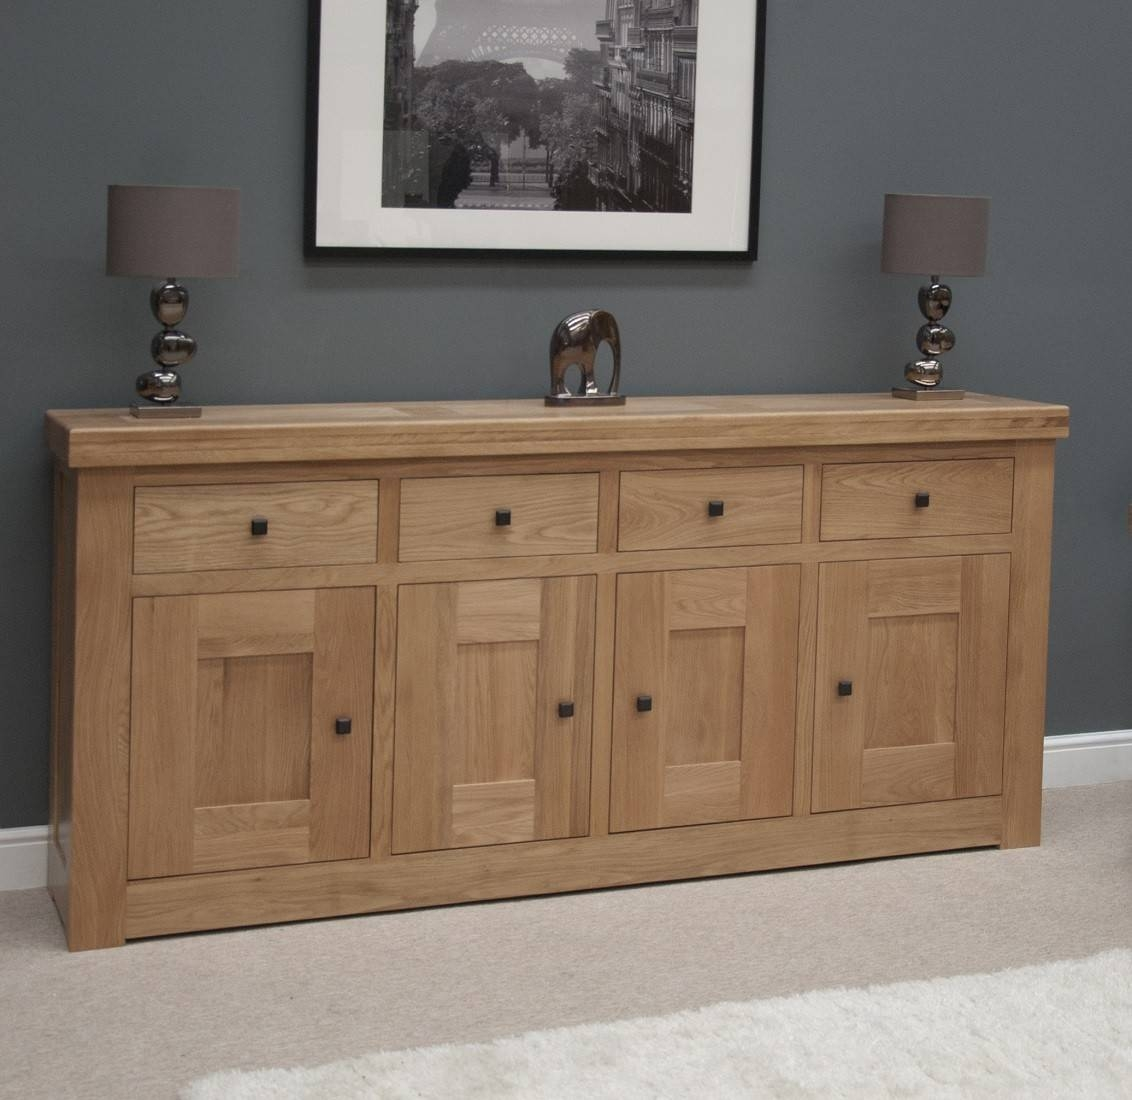 French Bordeaux Oak Extra Large 4 Door Sideboard | Oak Furniture Uk regarding Solid Oak Sideboards (Image 6 of 15)